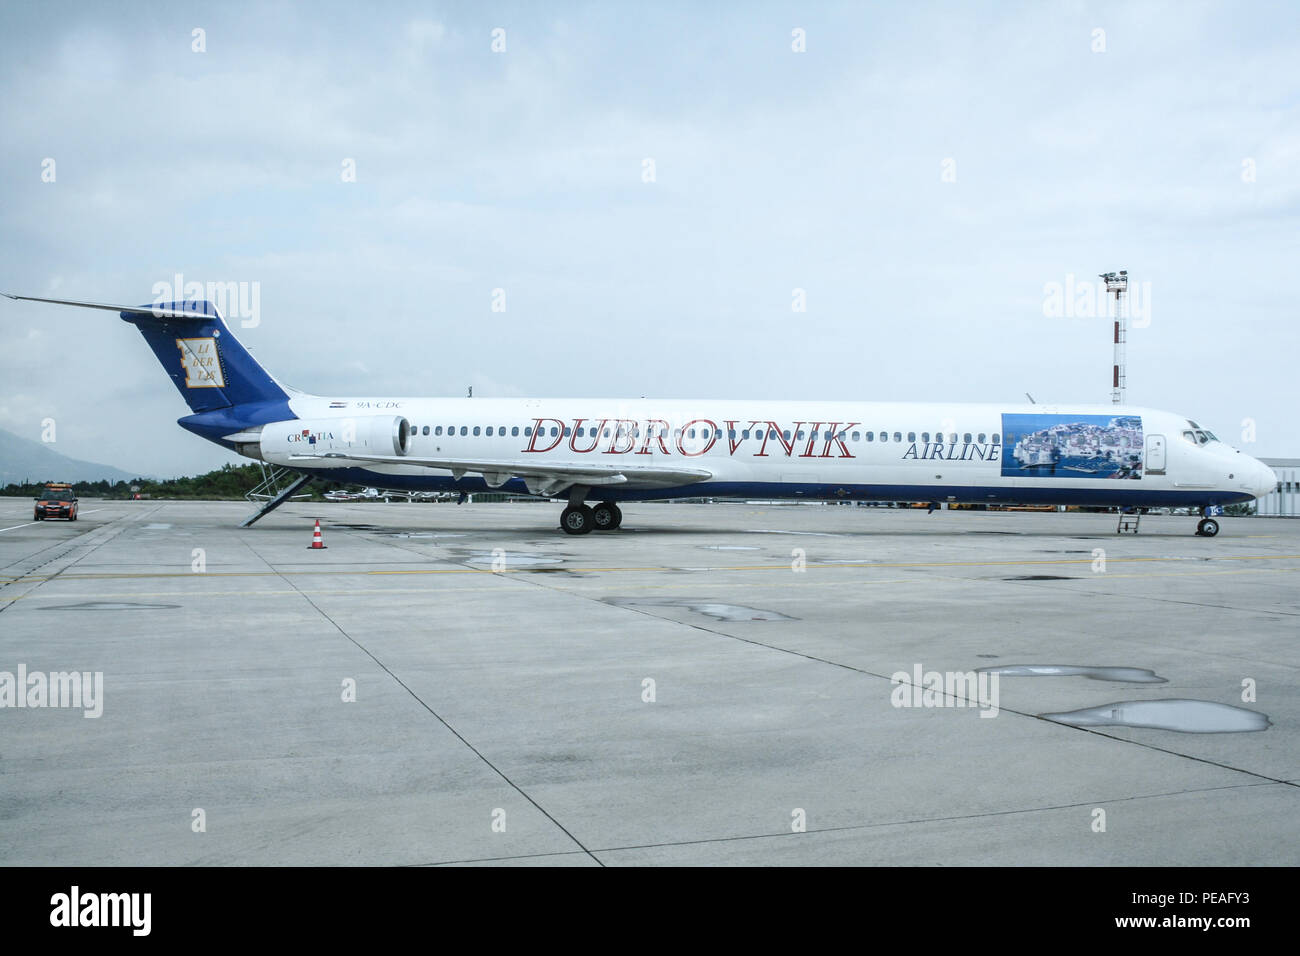 DUBROVNIK, CROATIA - APRIL 27 - 2007: MD82 from Dubrovnik Airlines on the apron of Dubrovnik airport. the company was a charter airline from Croatia,  Stock Photo